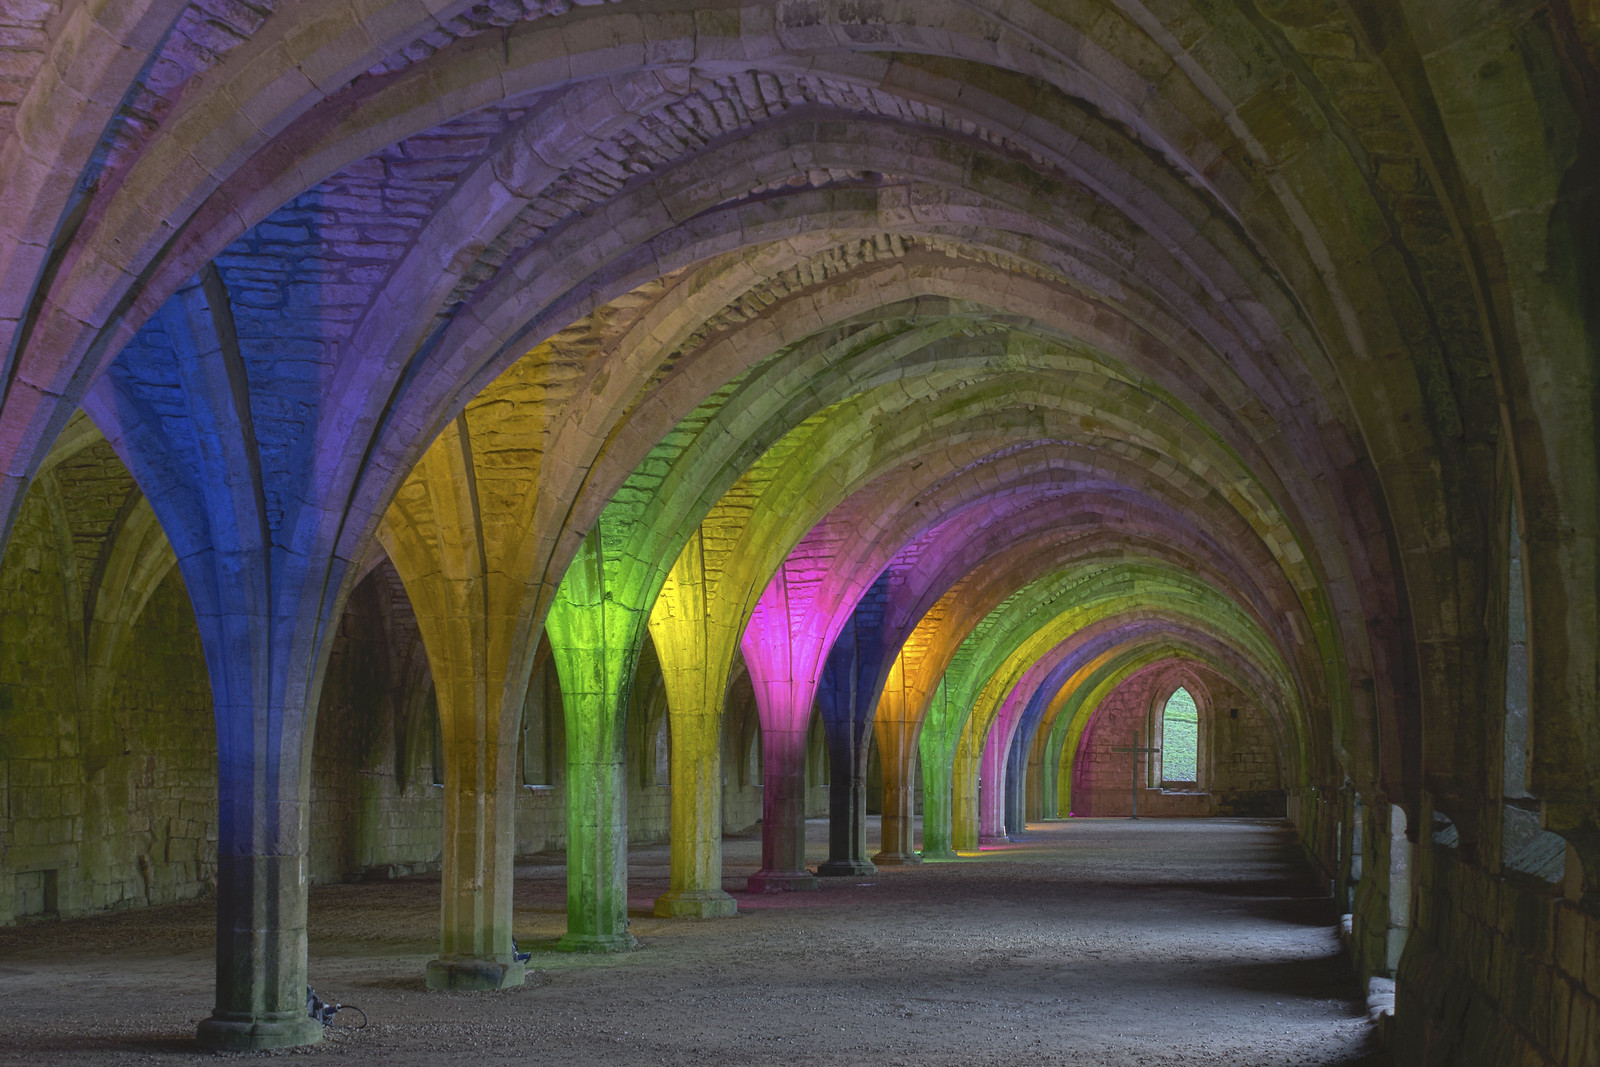 Fountains Abbey Monks' cellarium. Credit Katie Chan